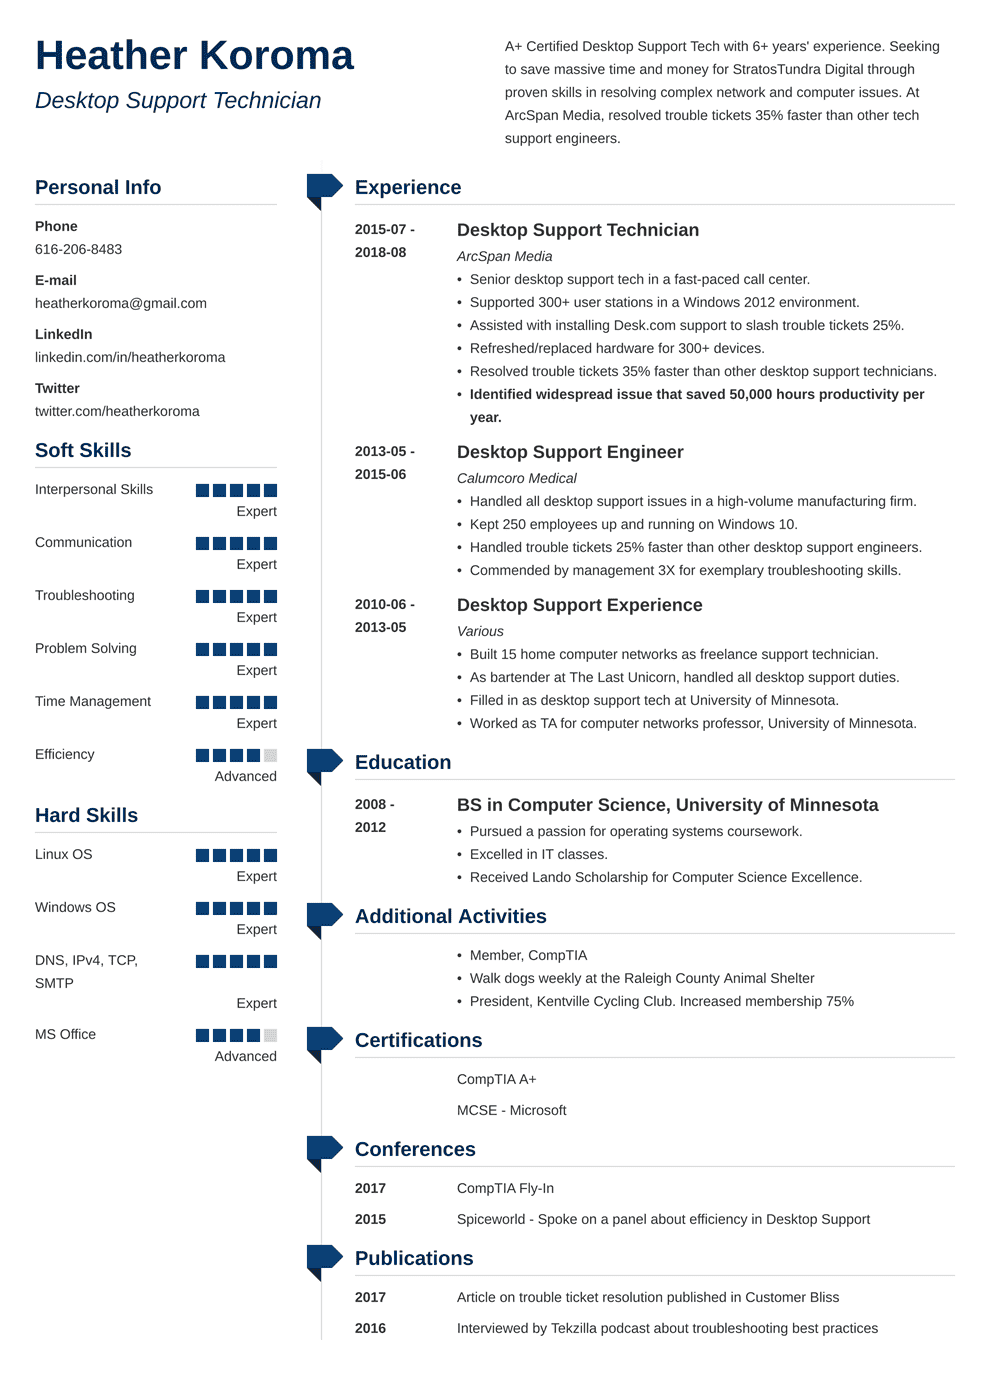 Line Cook Resume: Sample and Complete Guide [+20 Examples]